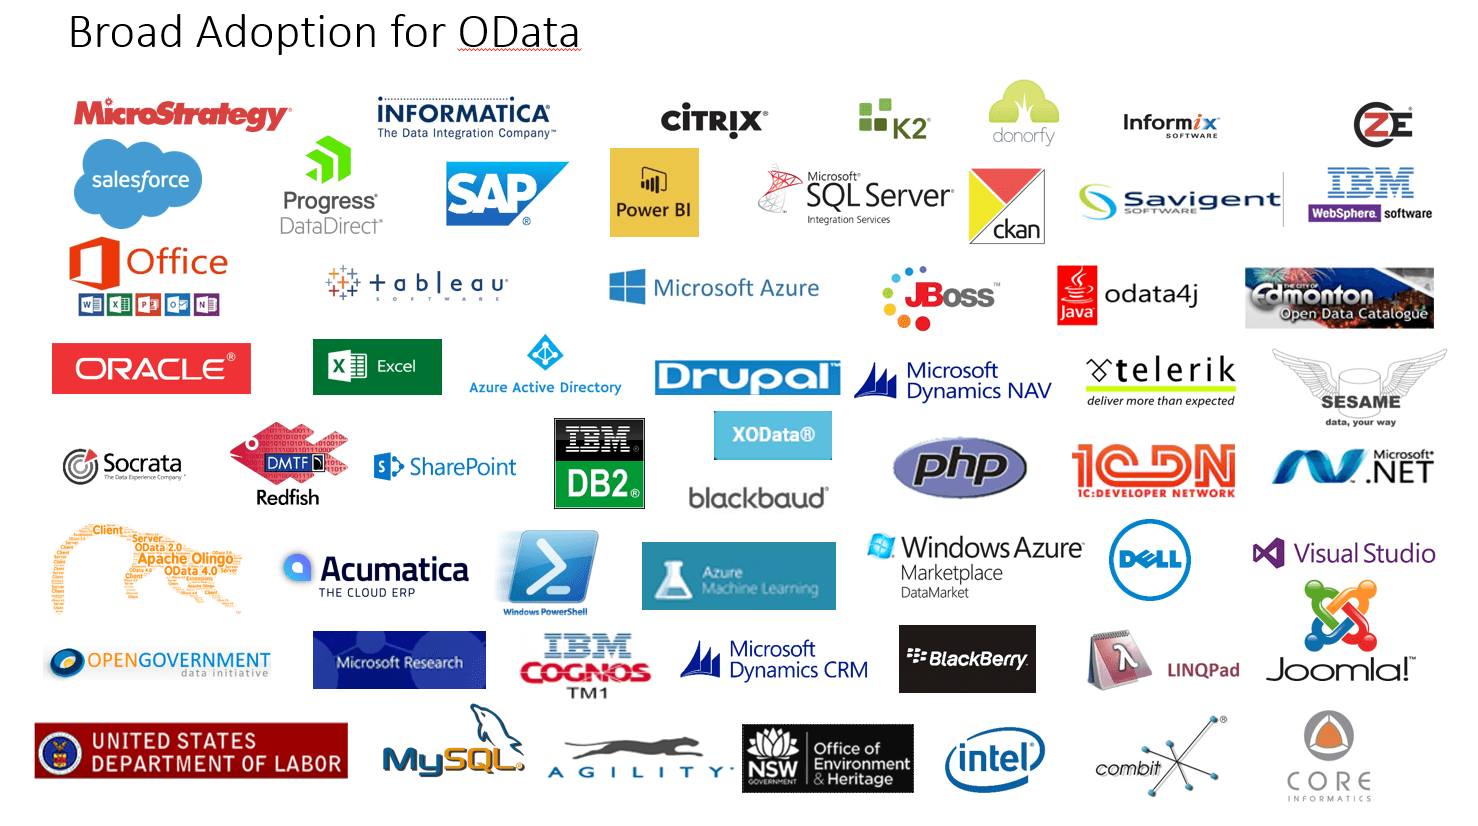 Broad Adoption of OData